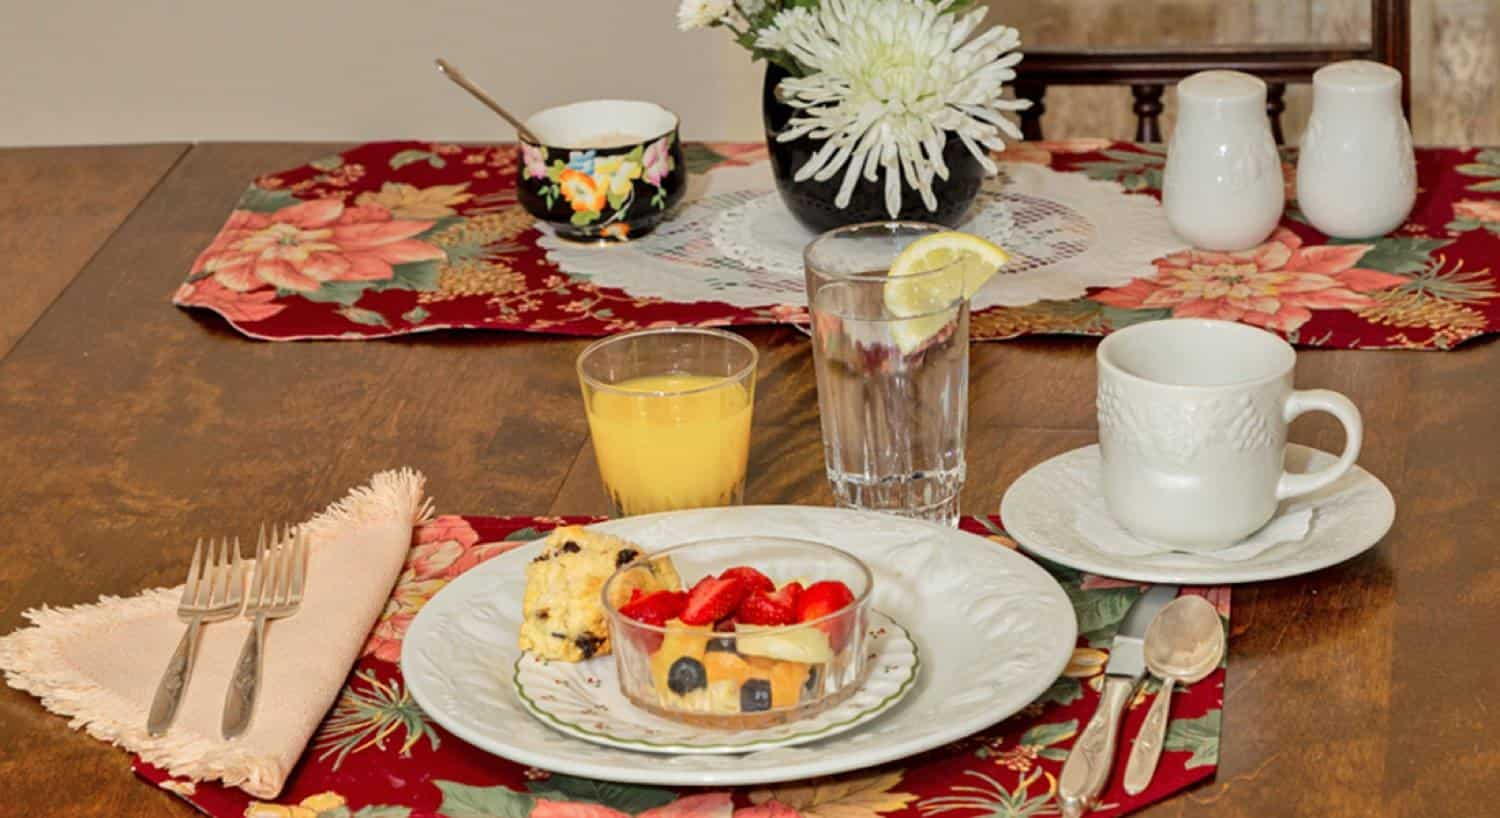 Dining table set with fresh flowers, fruit, scone, juice, lemon water and coffee cup